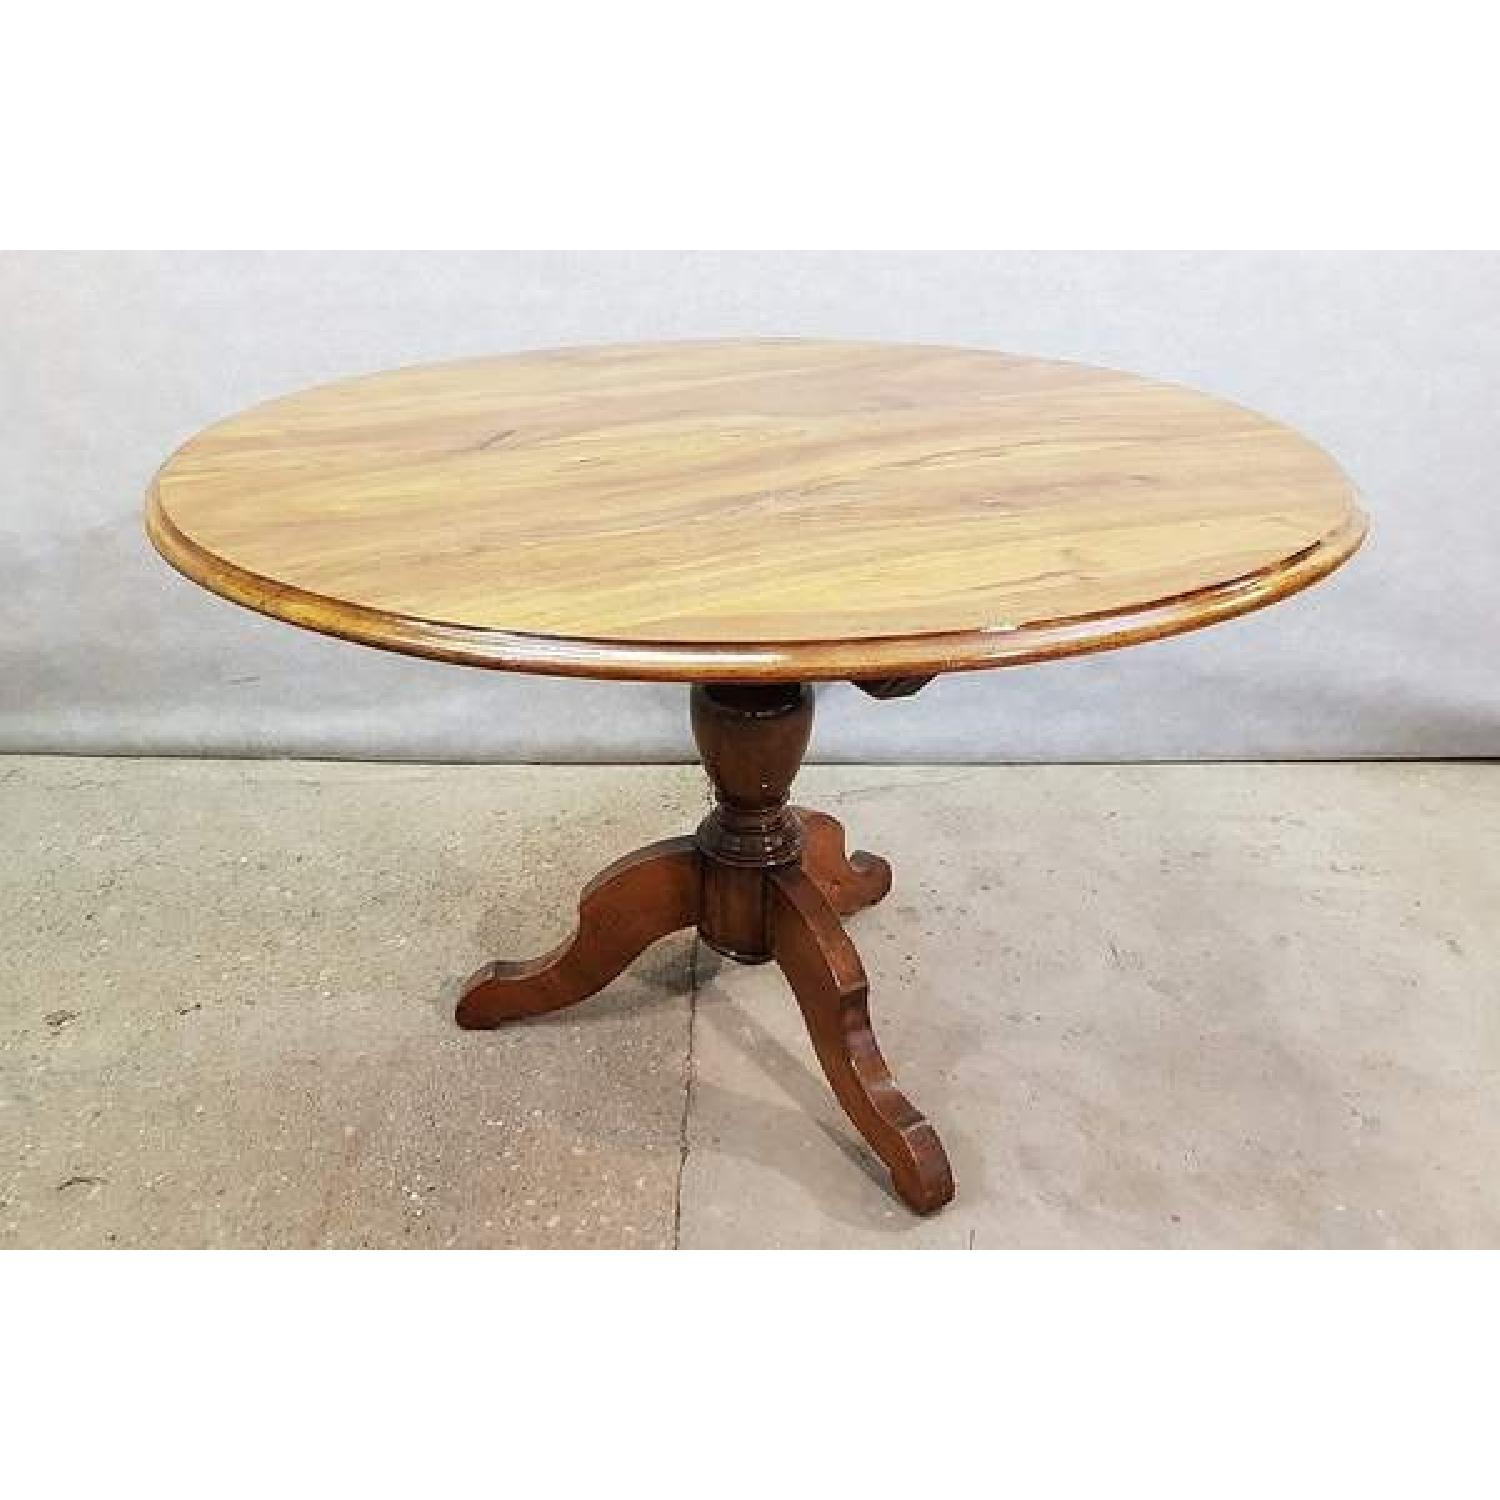 Antique French Walnut Round Tilt Top Occasional Side Table-0